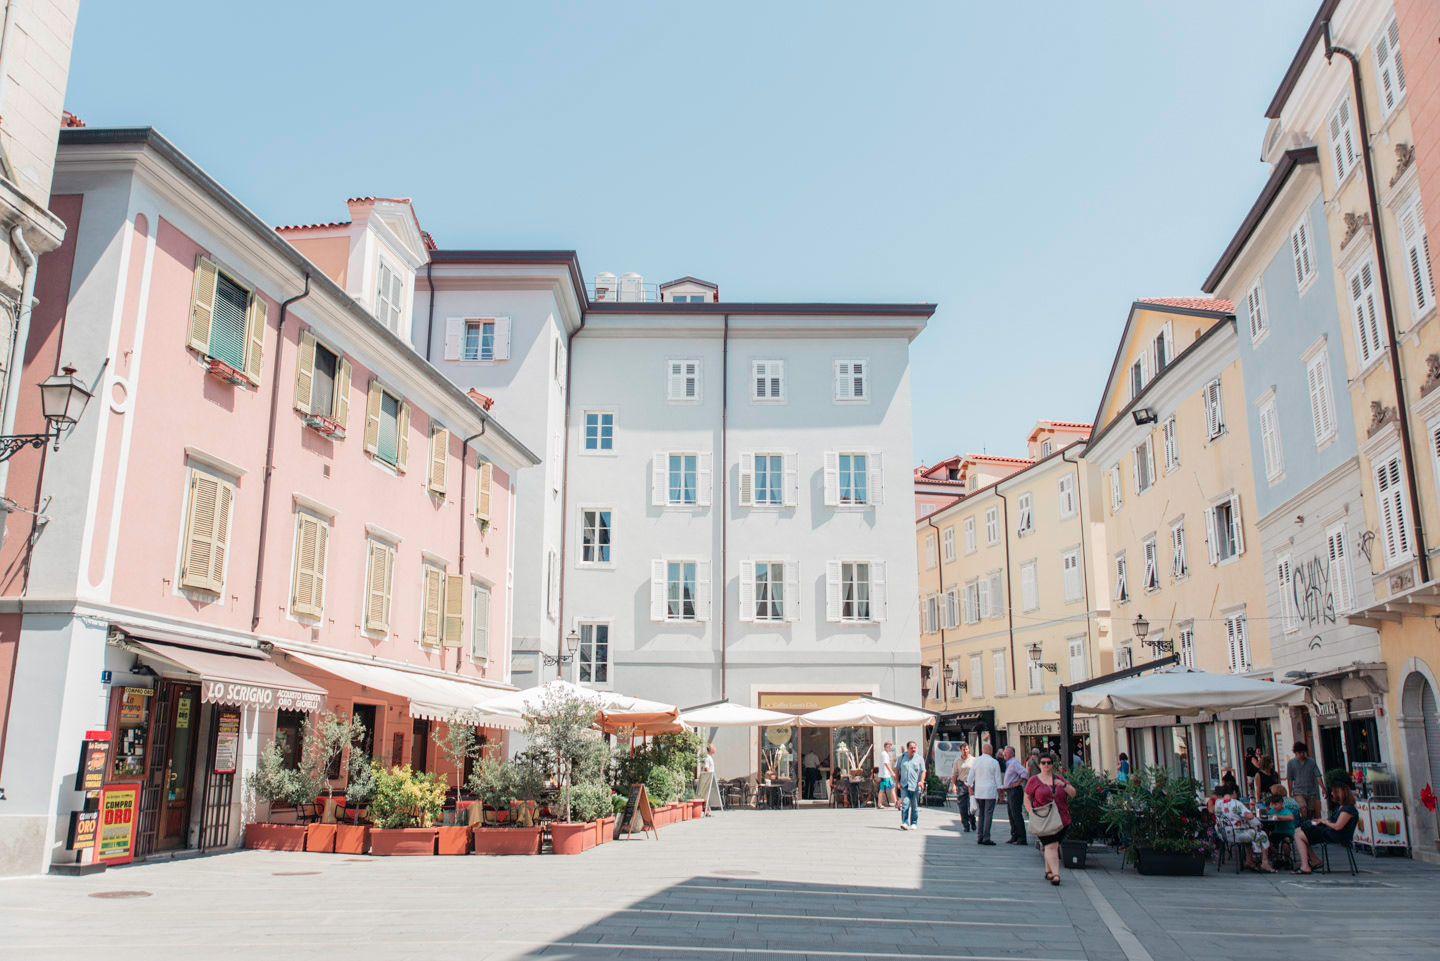 Blog-Mode-And-The-City-Lifestyle-Voyage-Italie-Trieste-Padoue-lac-Come-Verone-2